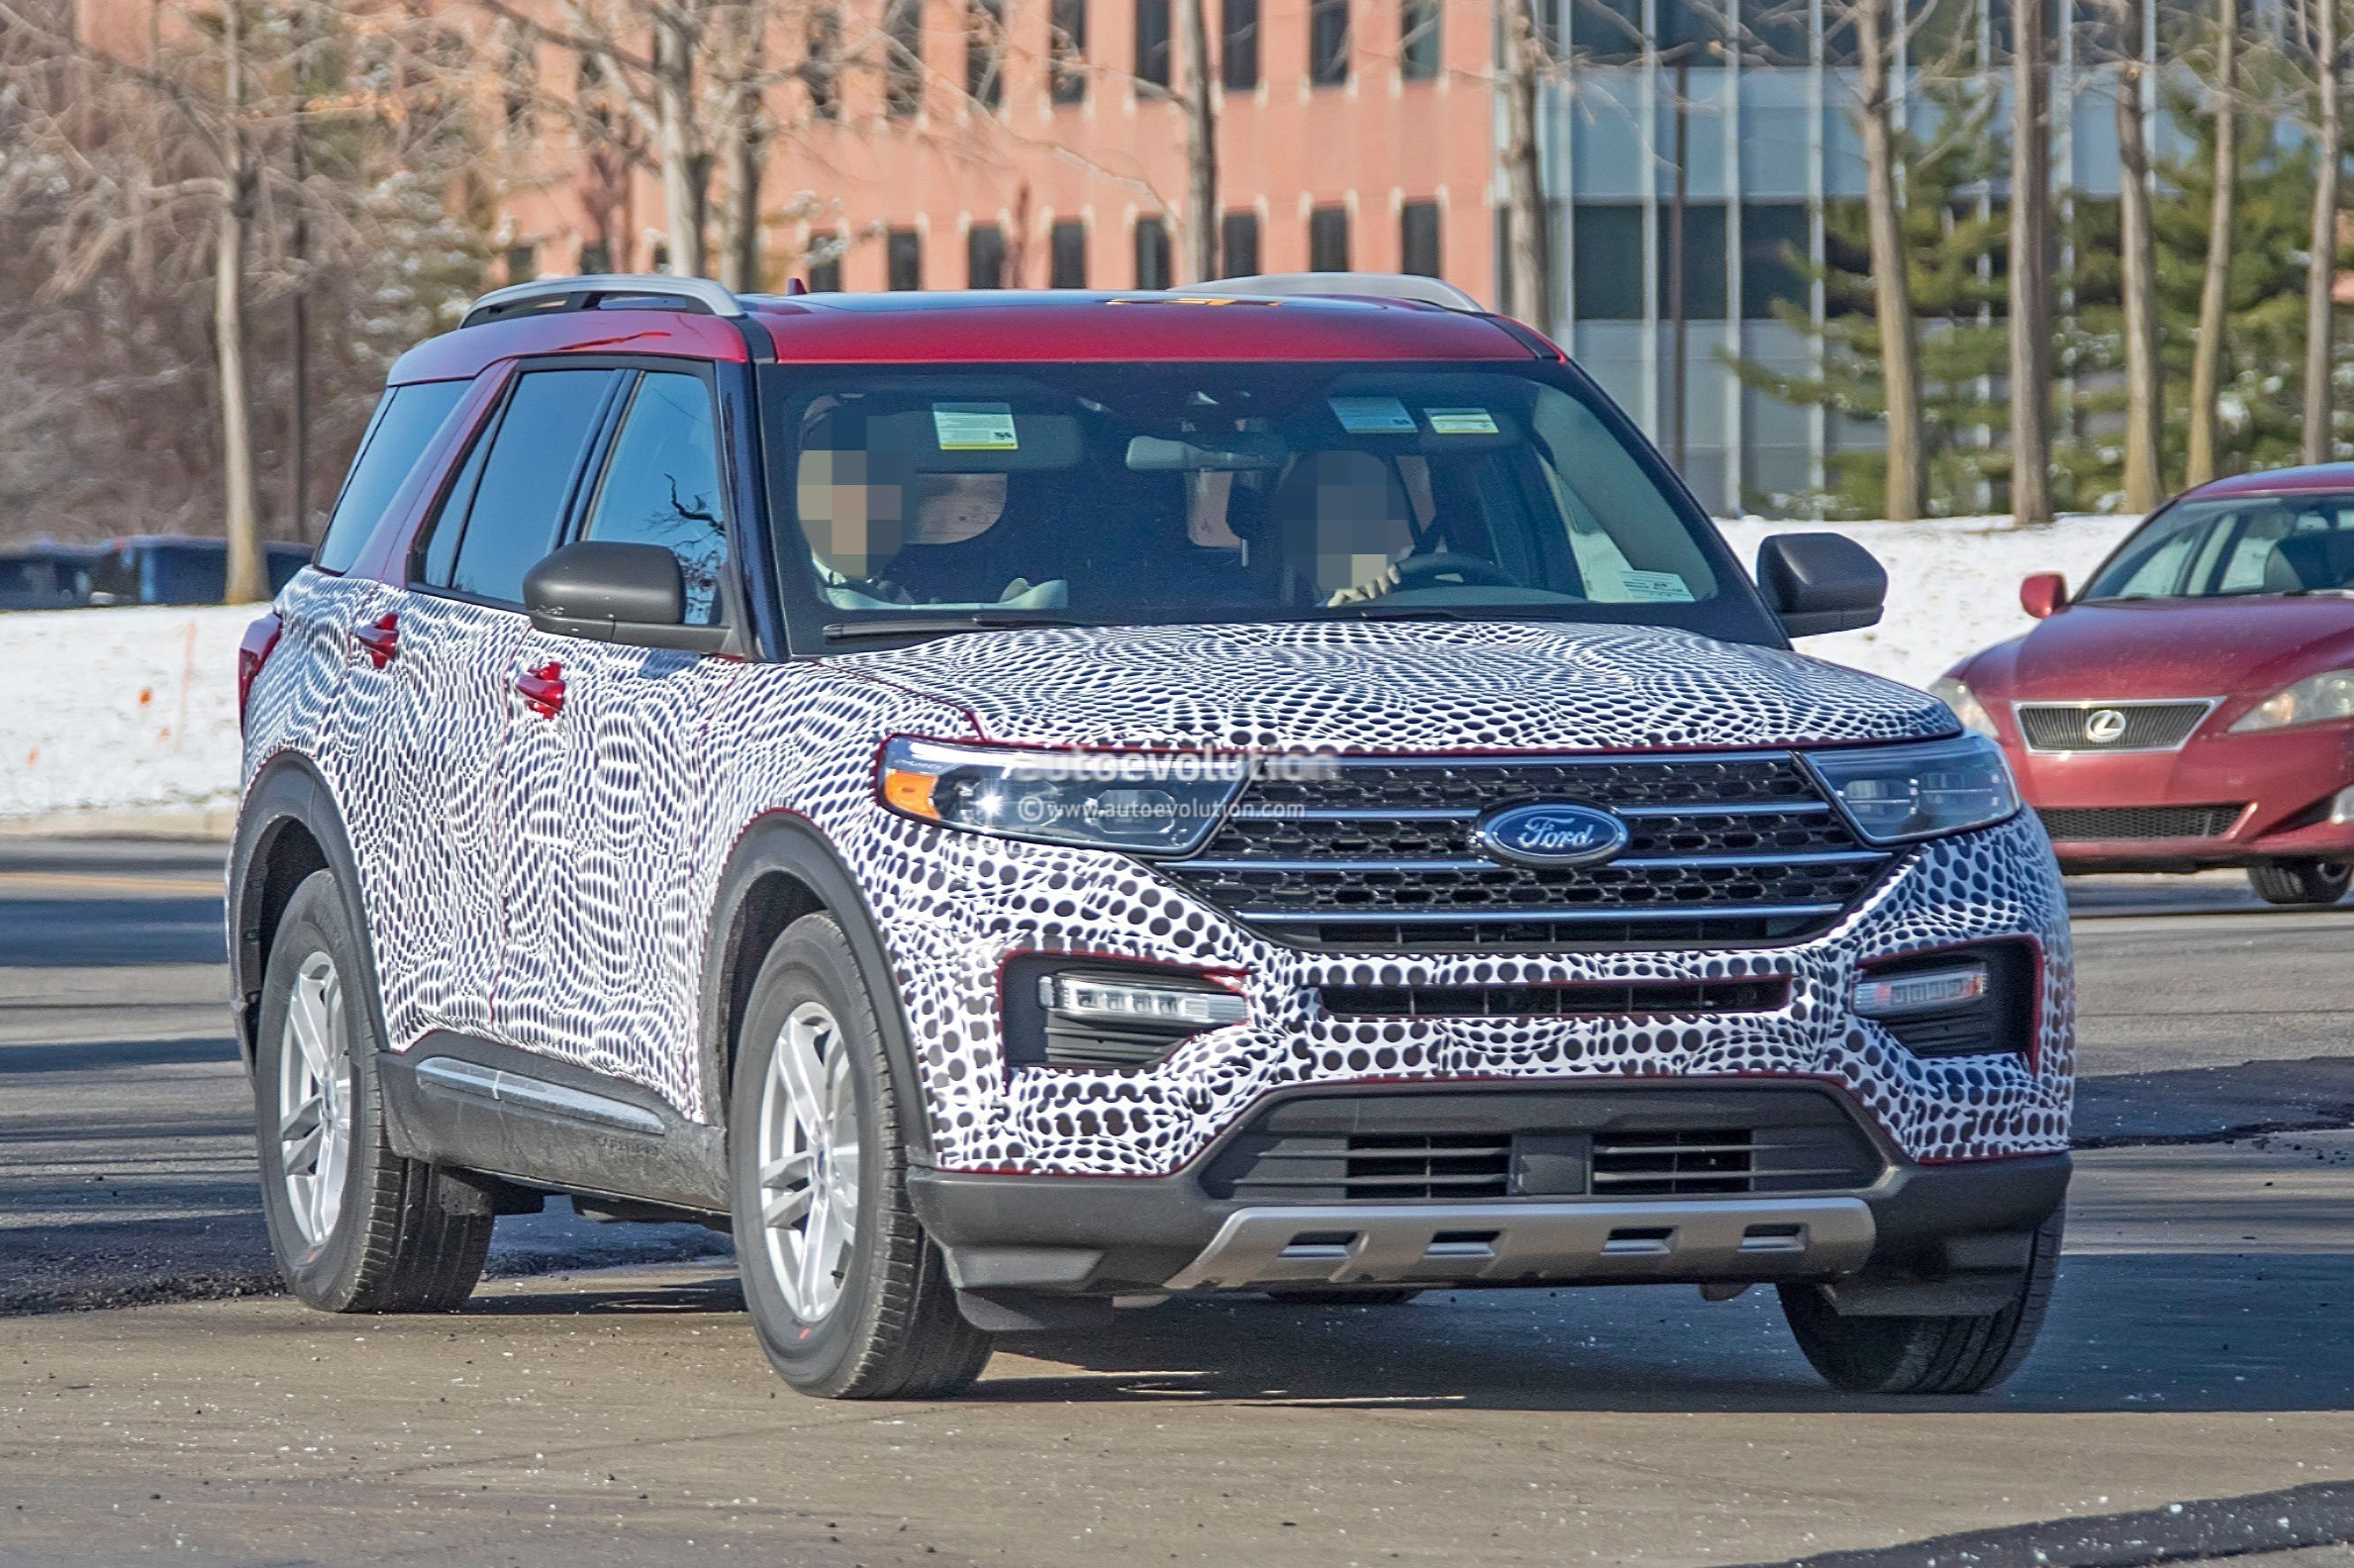 2020 Ford Explorer Looks Plasticky In Most Revealing Spy Photos Yet - autoevolution